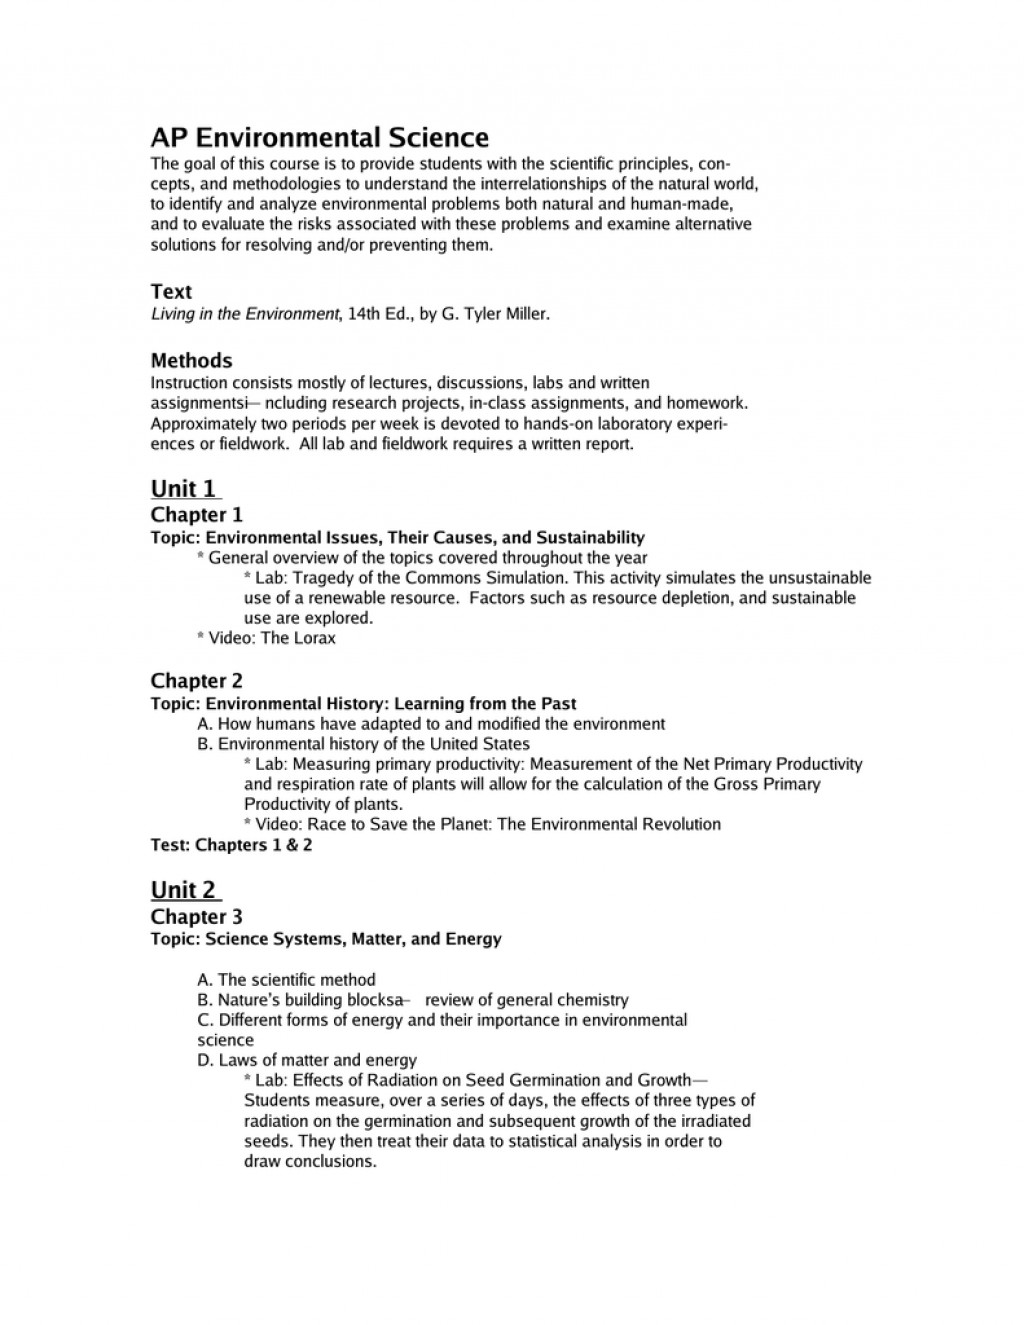 021 Ap Environmental Science Research Paper Topics 002102029 1 Fearsome Large